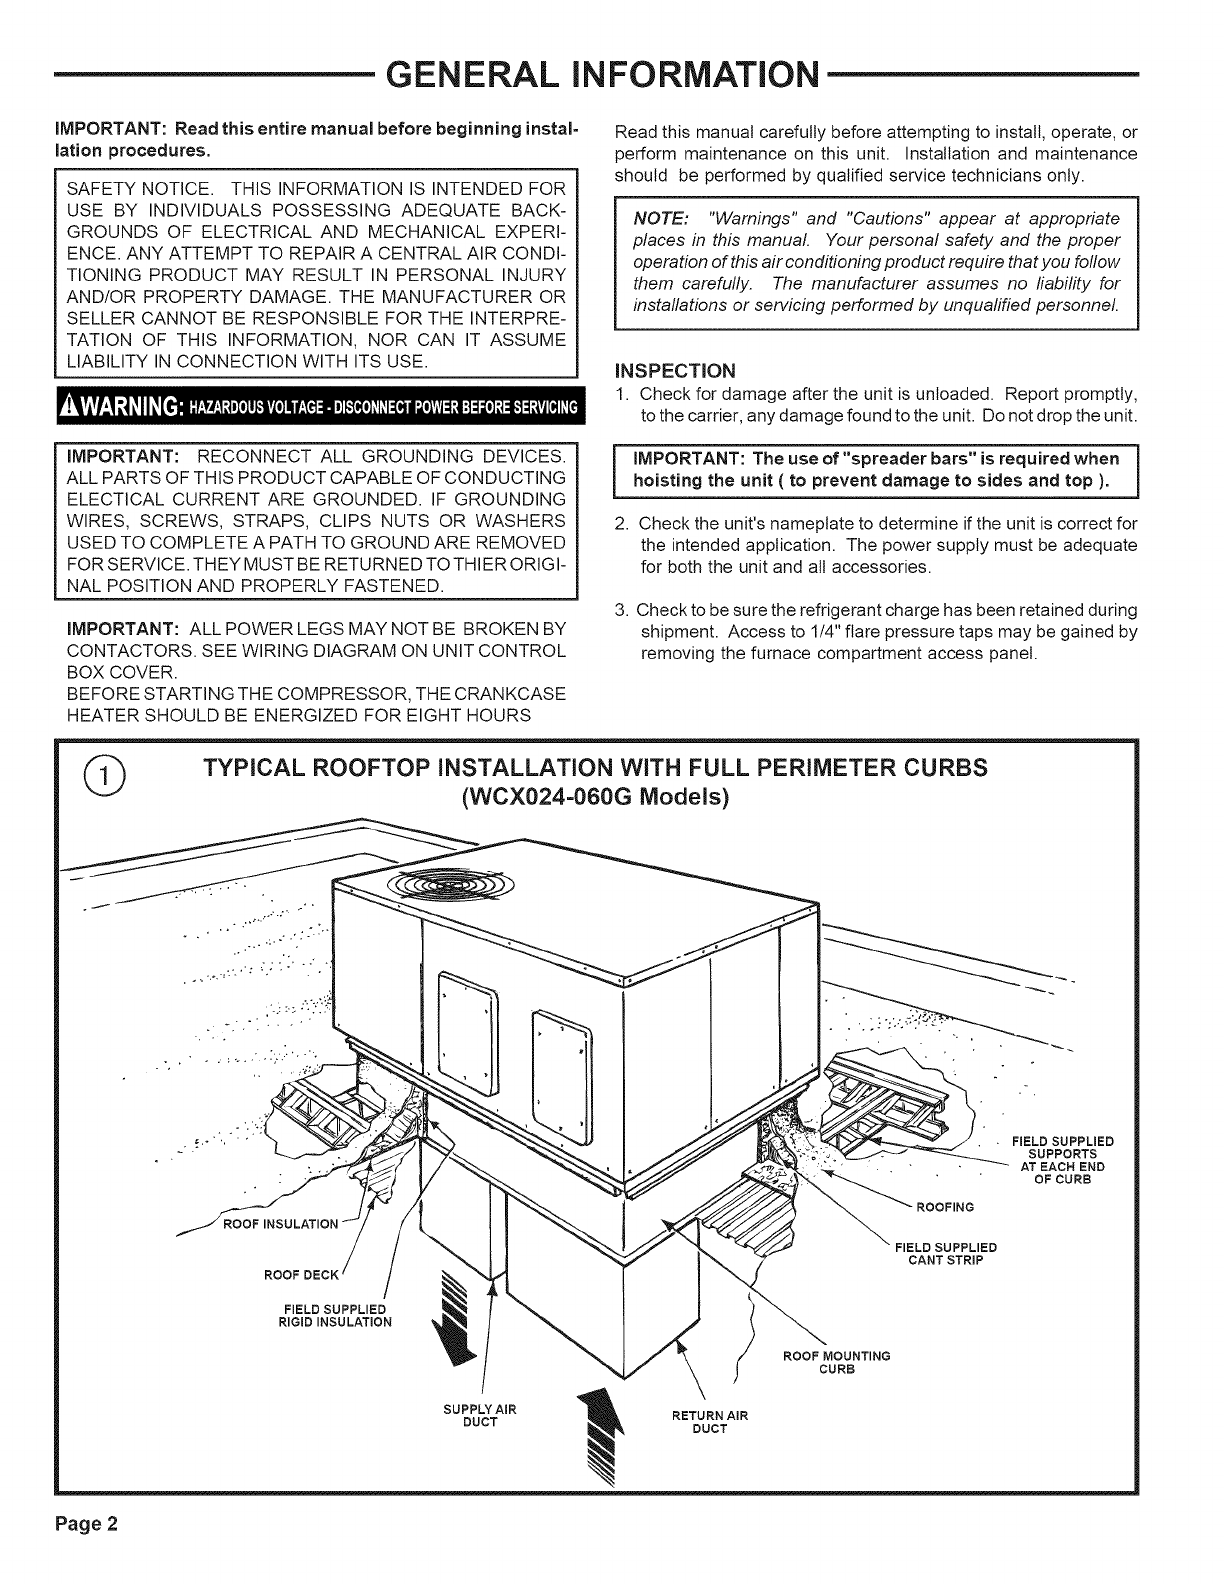 Trane Heat Pumps Wiring Diagram from usermanual.wiki